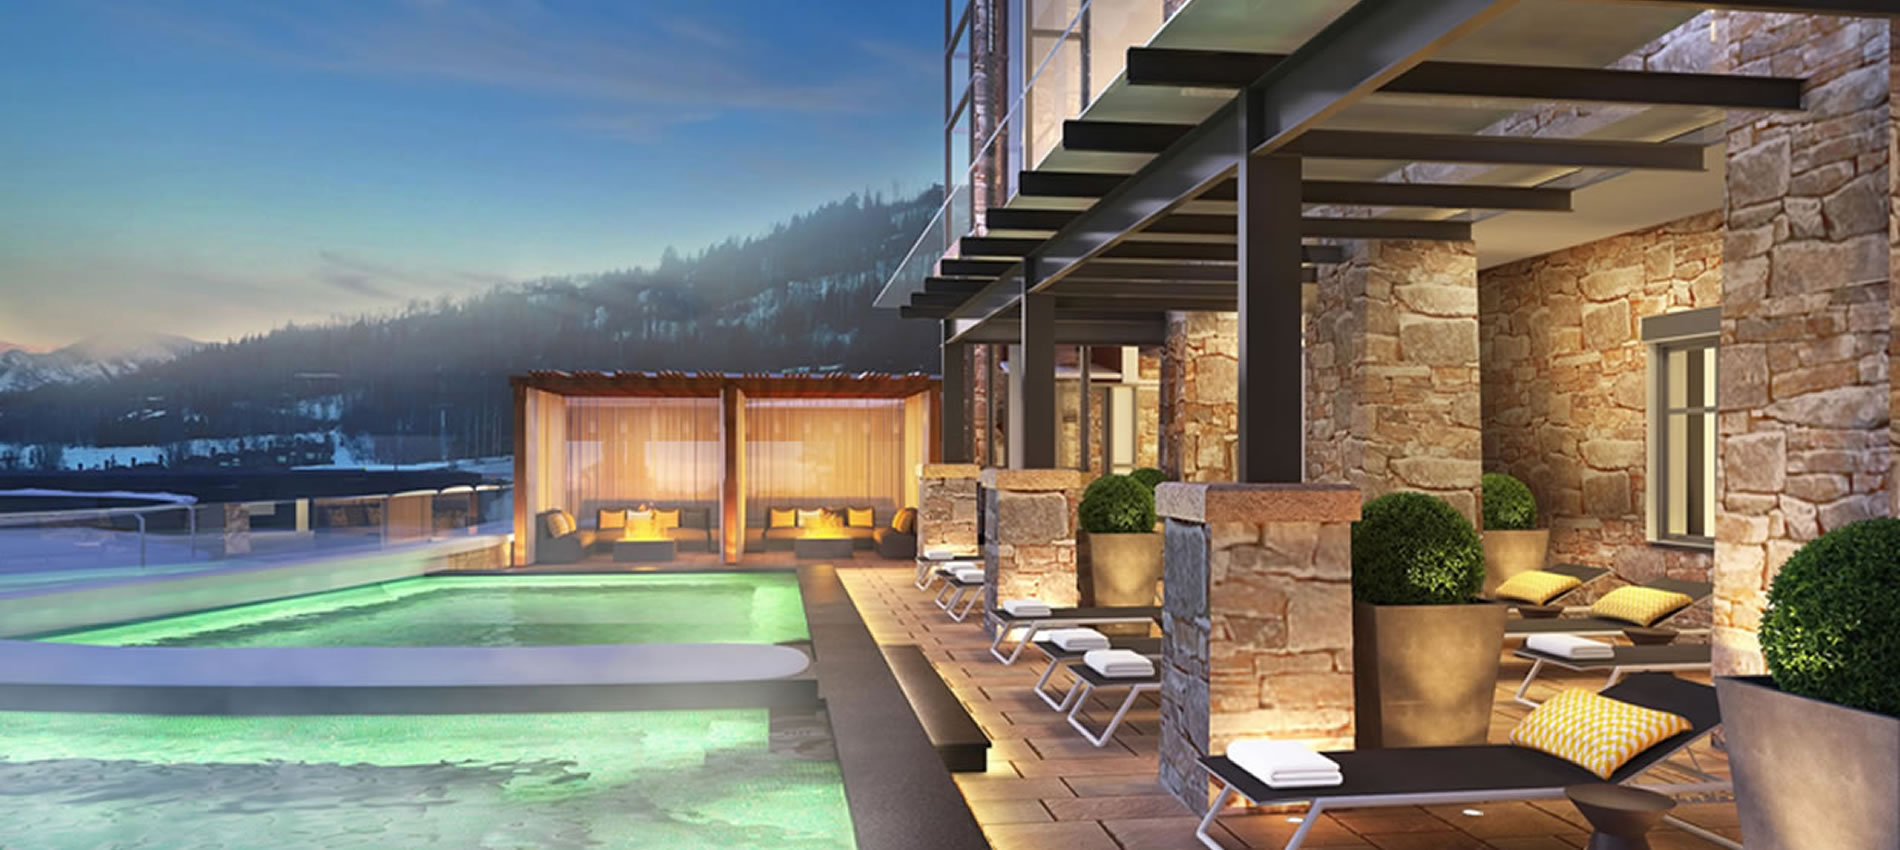 Hotel-limelight-snowmass-Pool